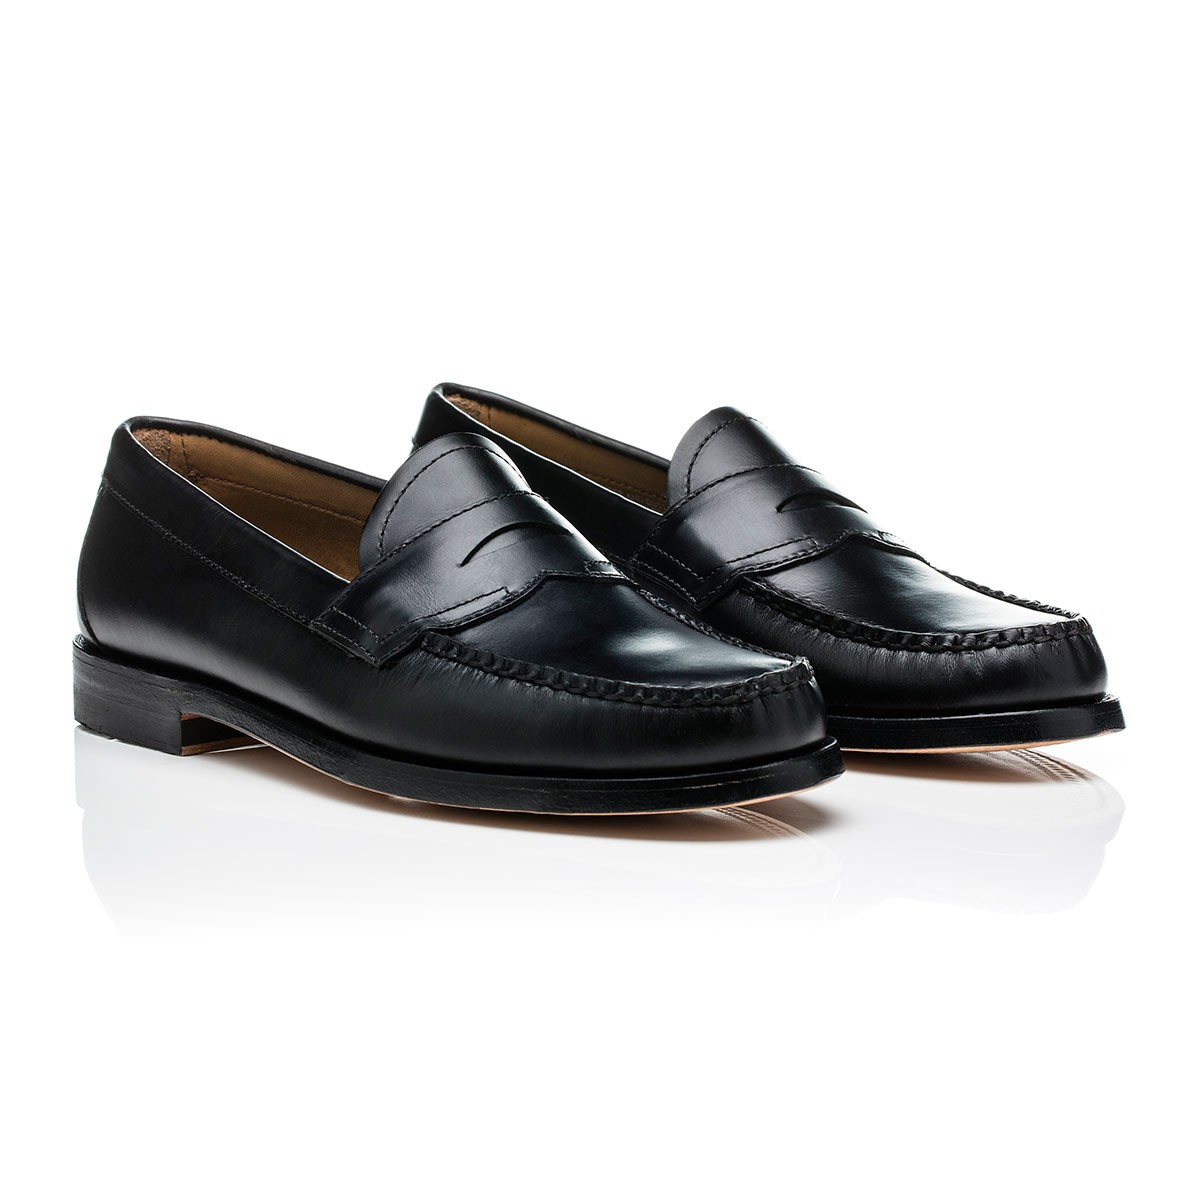 G.H. Bass & Co. Black Horween Leather Weejuns Logan Horween Black Leather